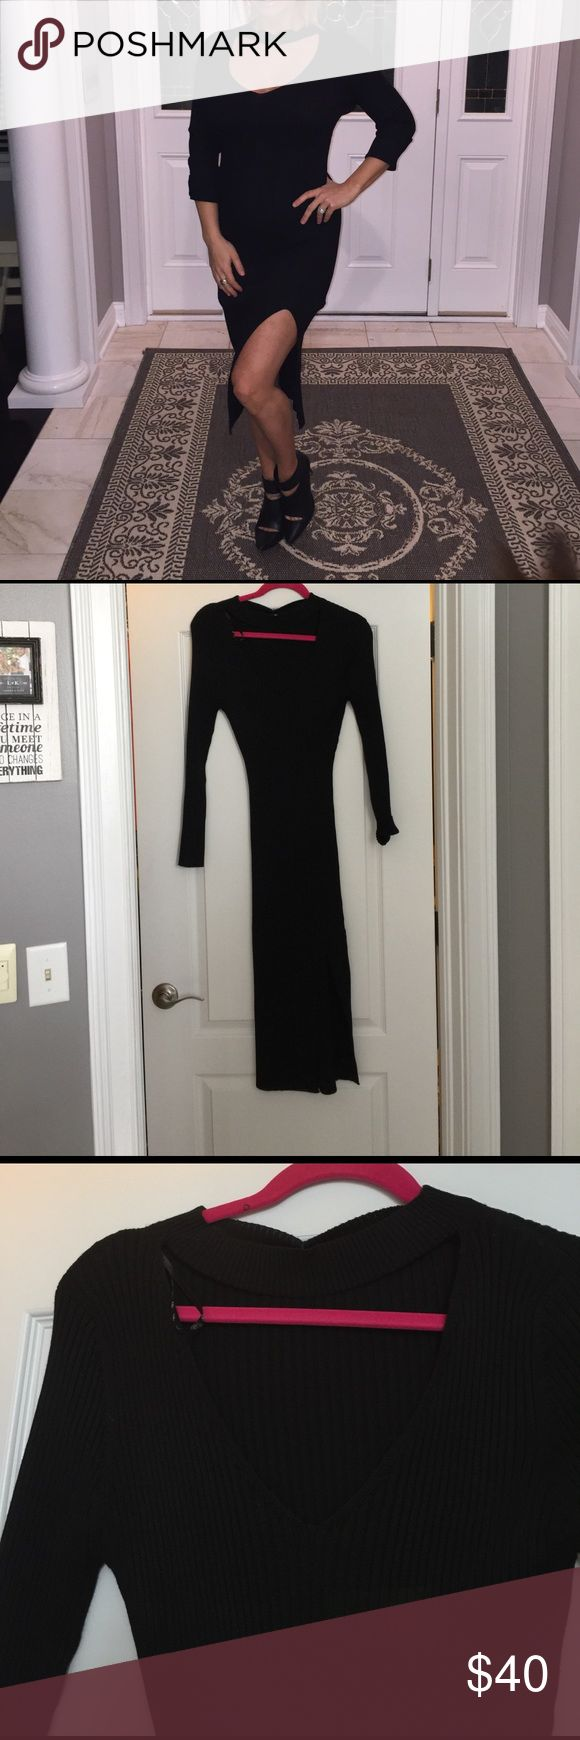 Misguided dress bought two Misguided dress bought two this one was never worn misguided Dresses Midi